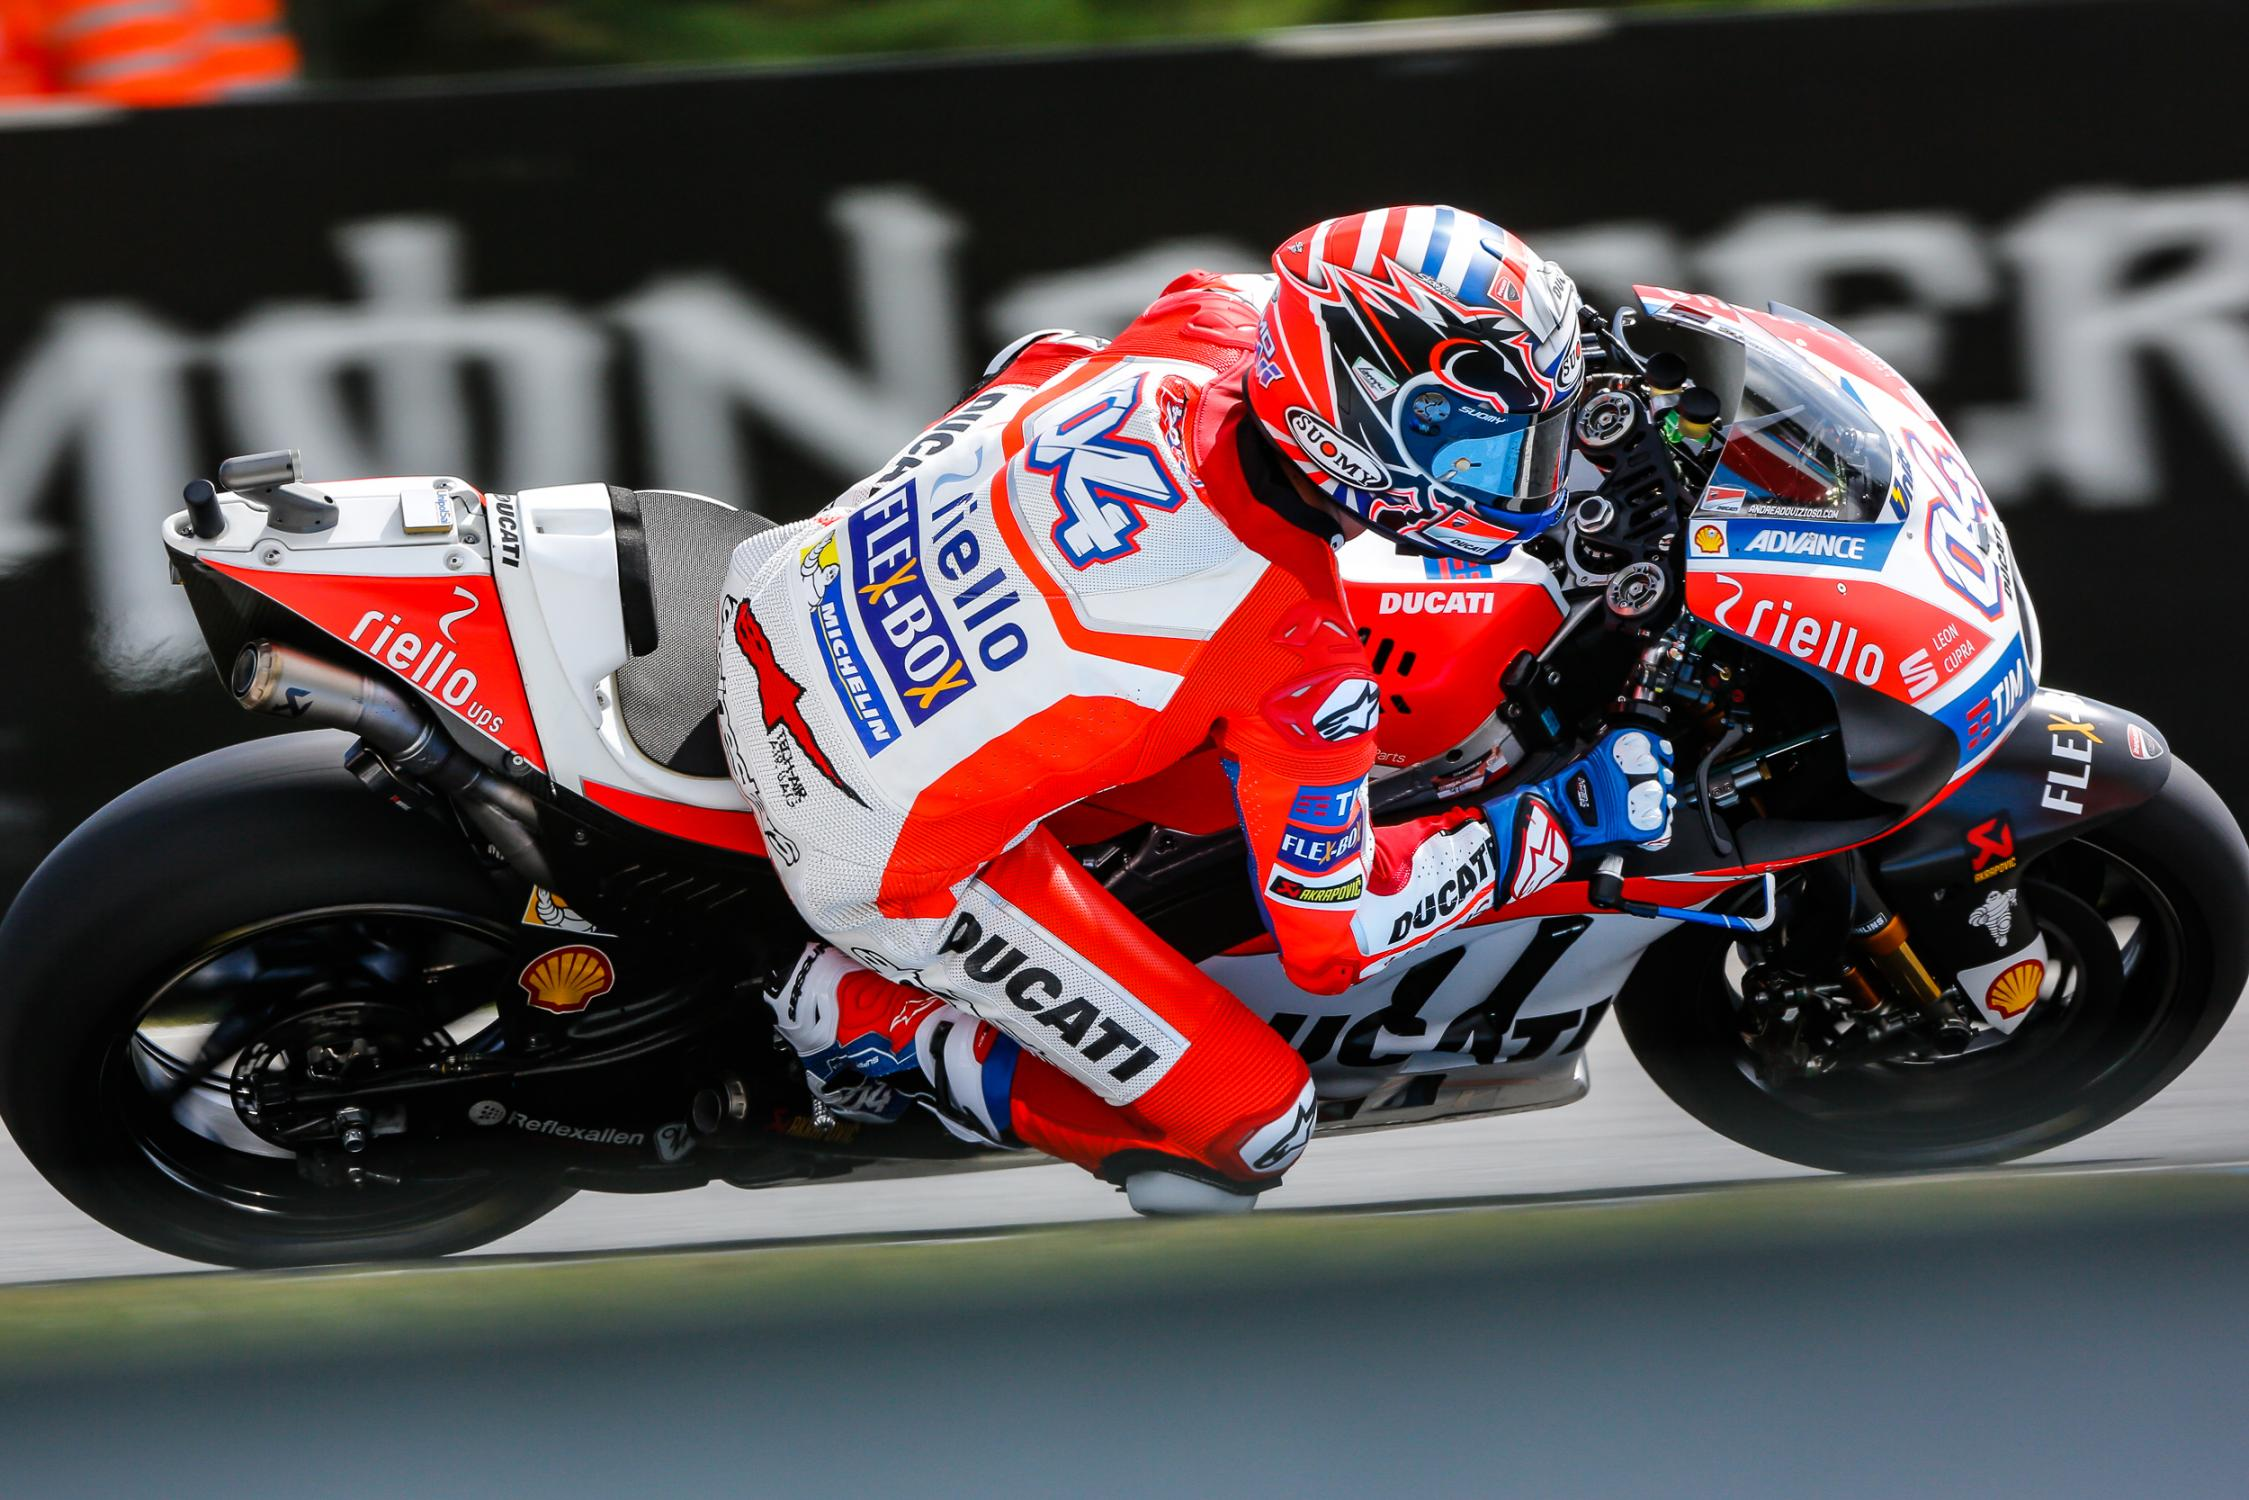 04-andrea-dovizioso-ita_gp_5782.gallery_full_top_fullscreen.jpg